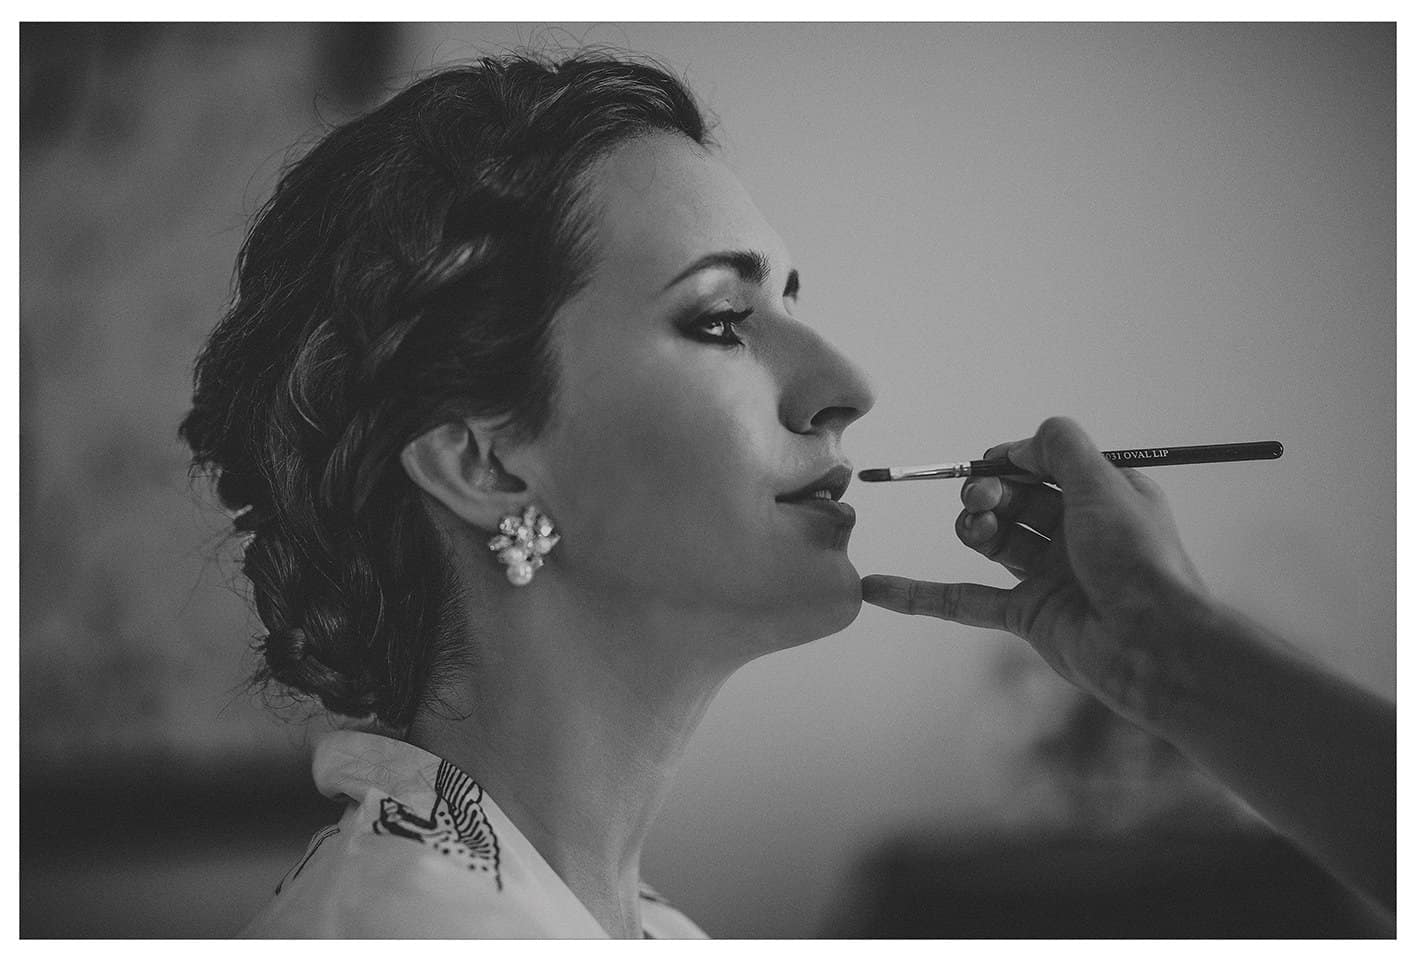 The make up artist applies lipstick onto the lips of the bride